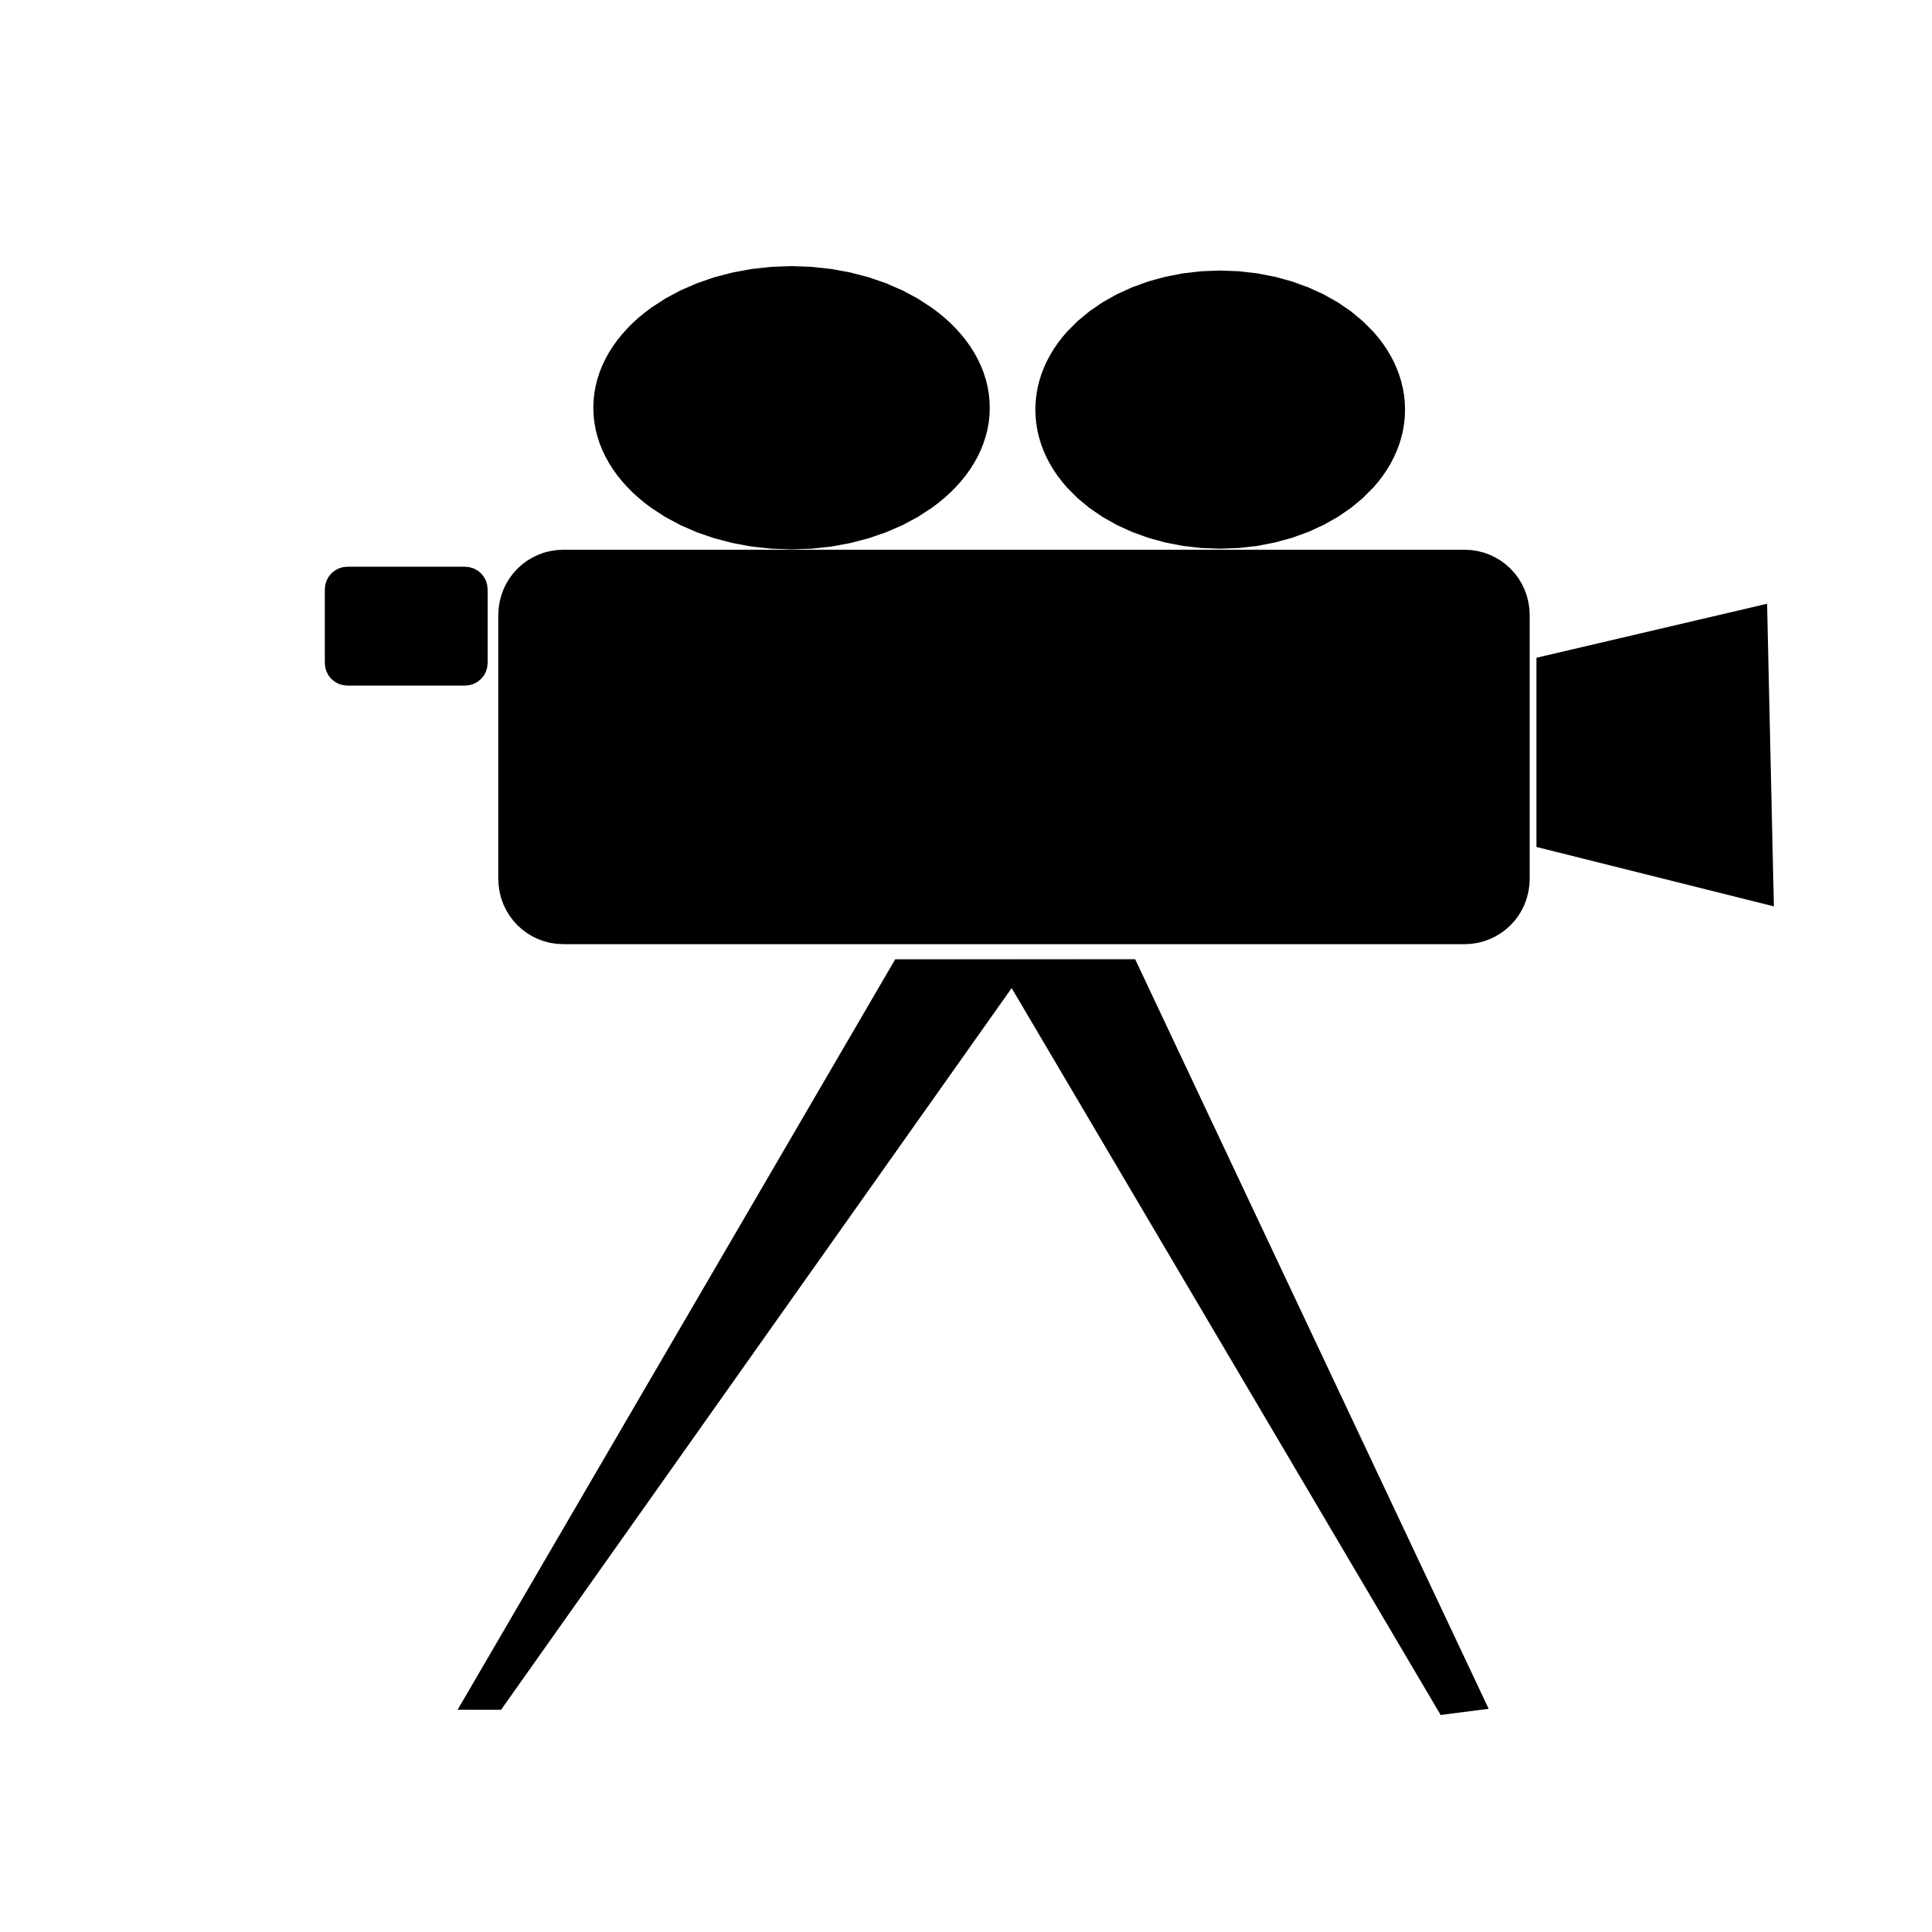 Movie camera clipart black and white.